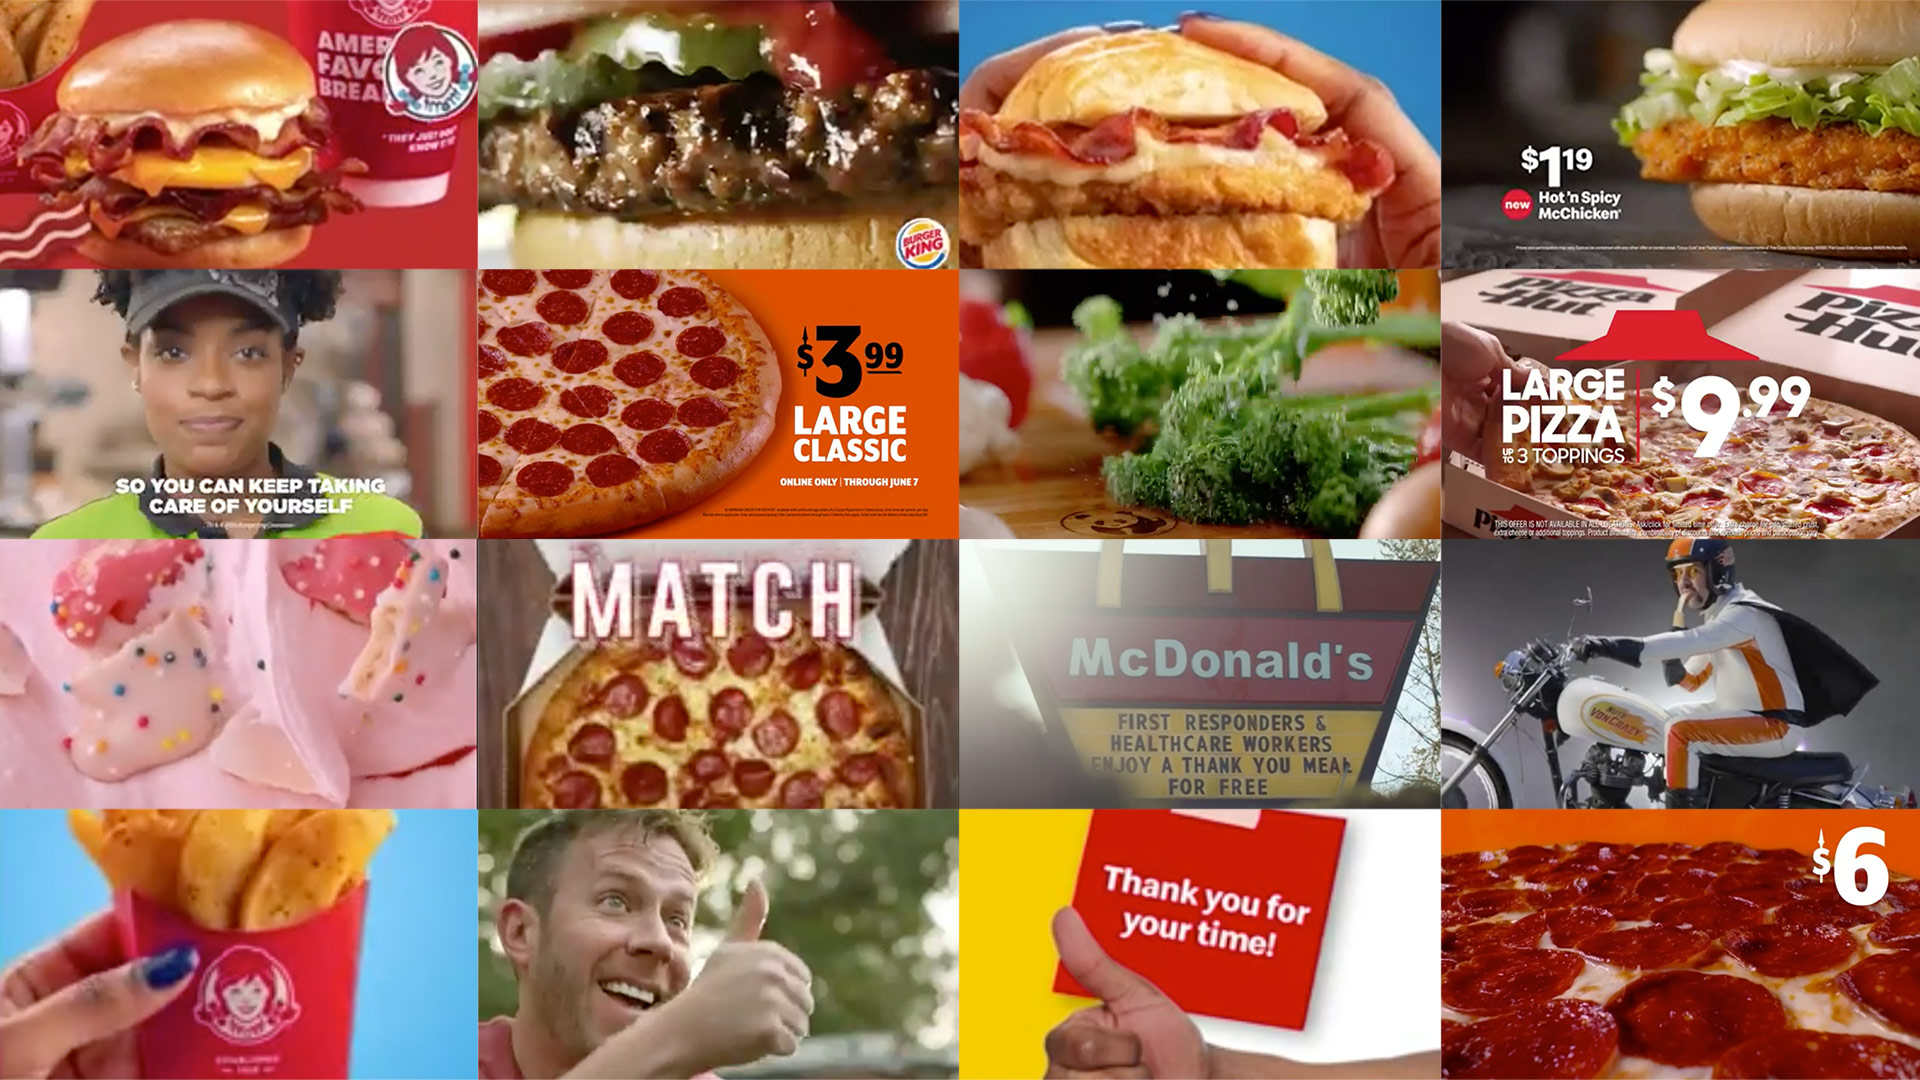 Selected thumbnails from some of the ads tested